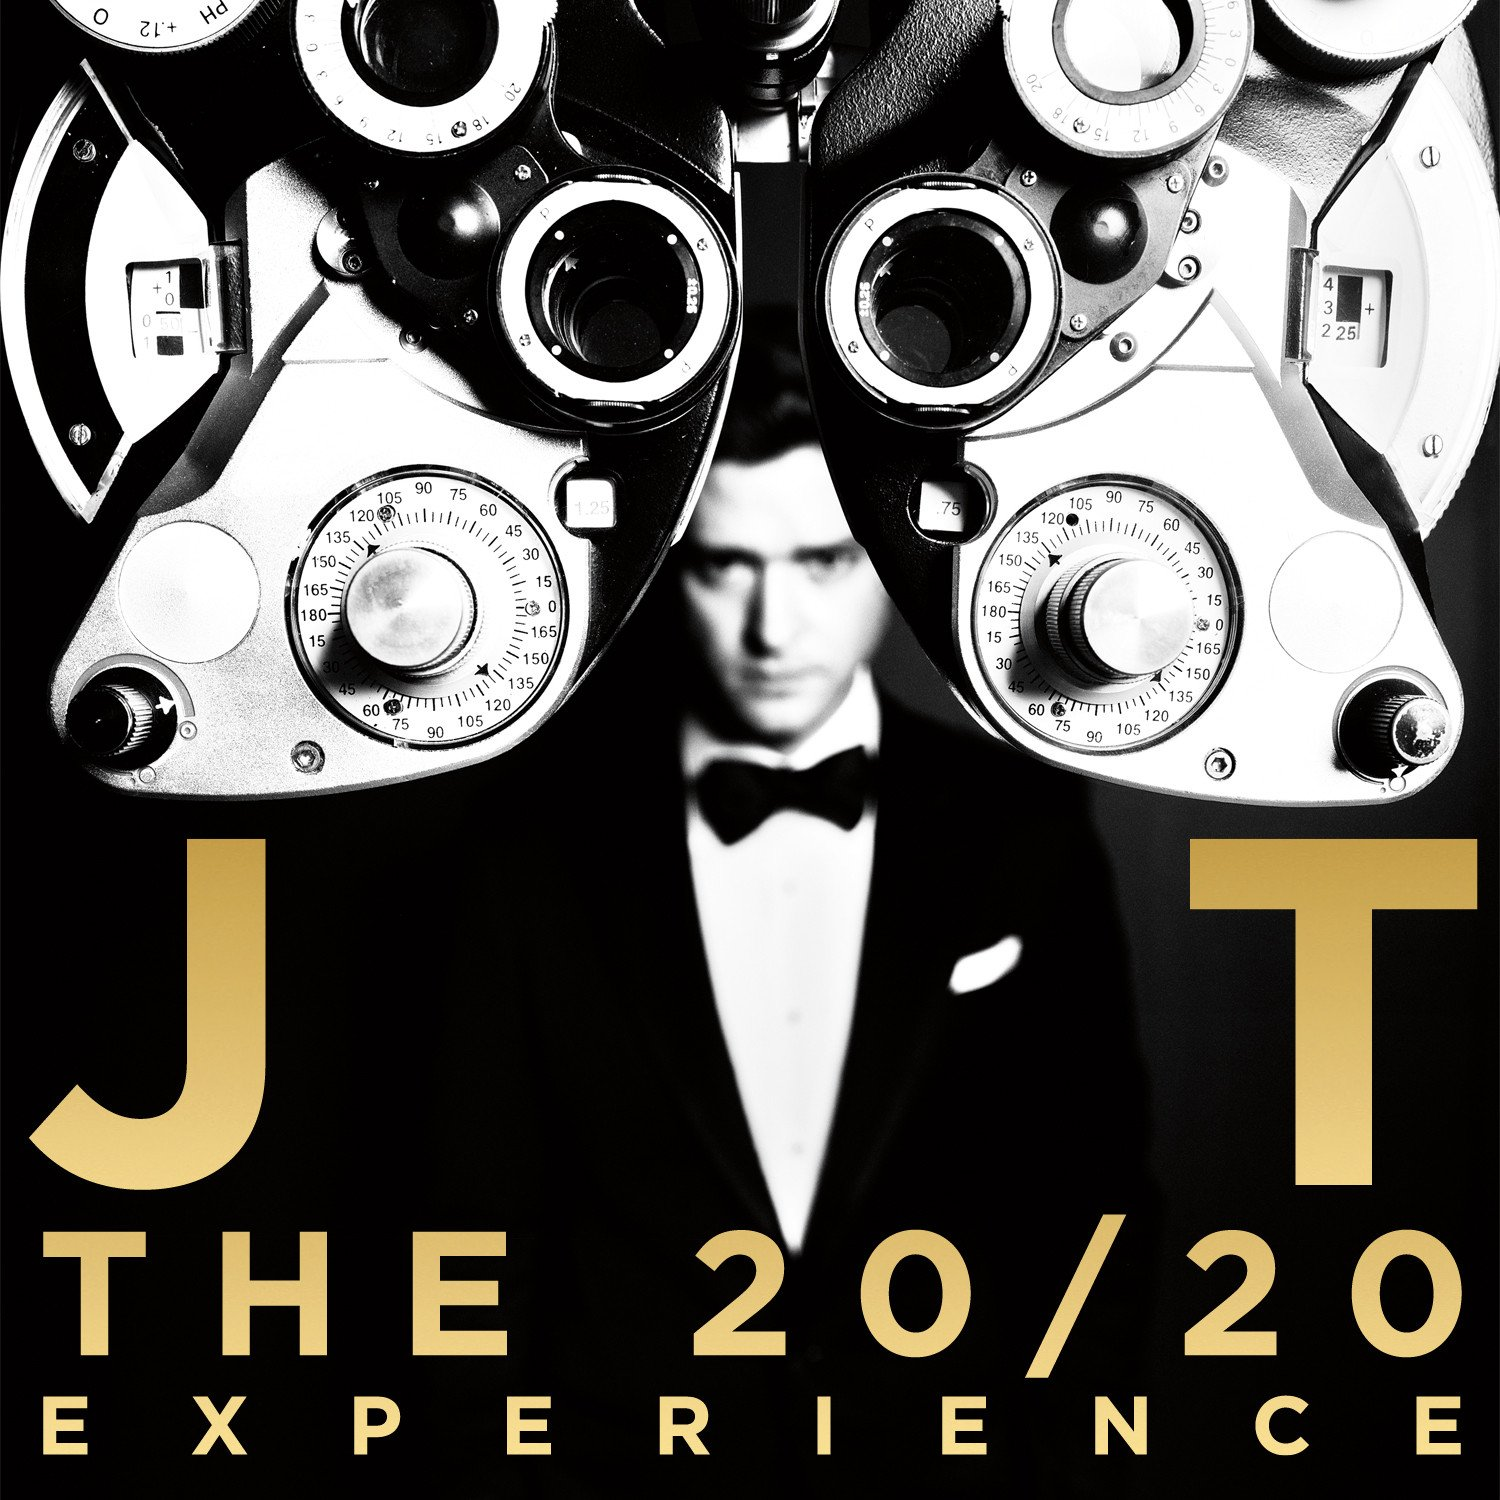 Futuresex Lovesounds Deluxe Version Justin Timberlake: Album Review – The 20/20 Experience Part 1 Of 2